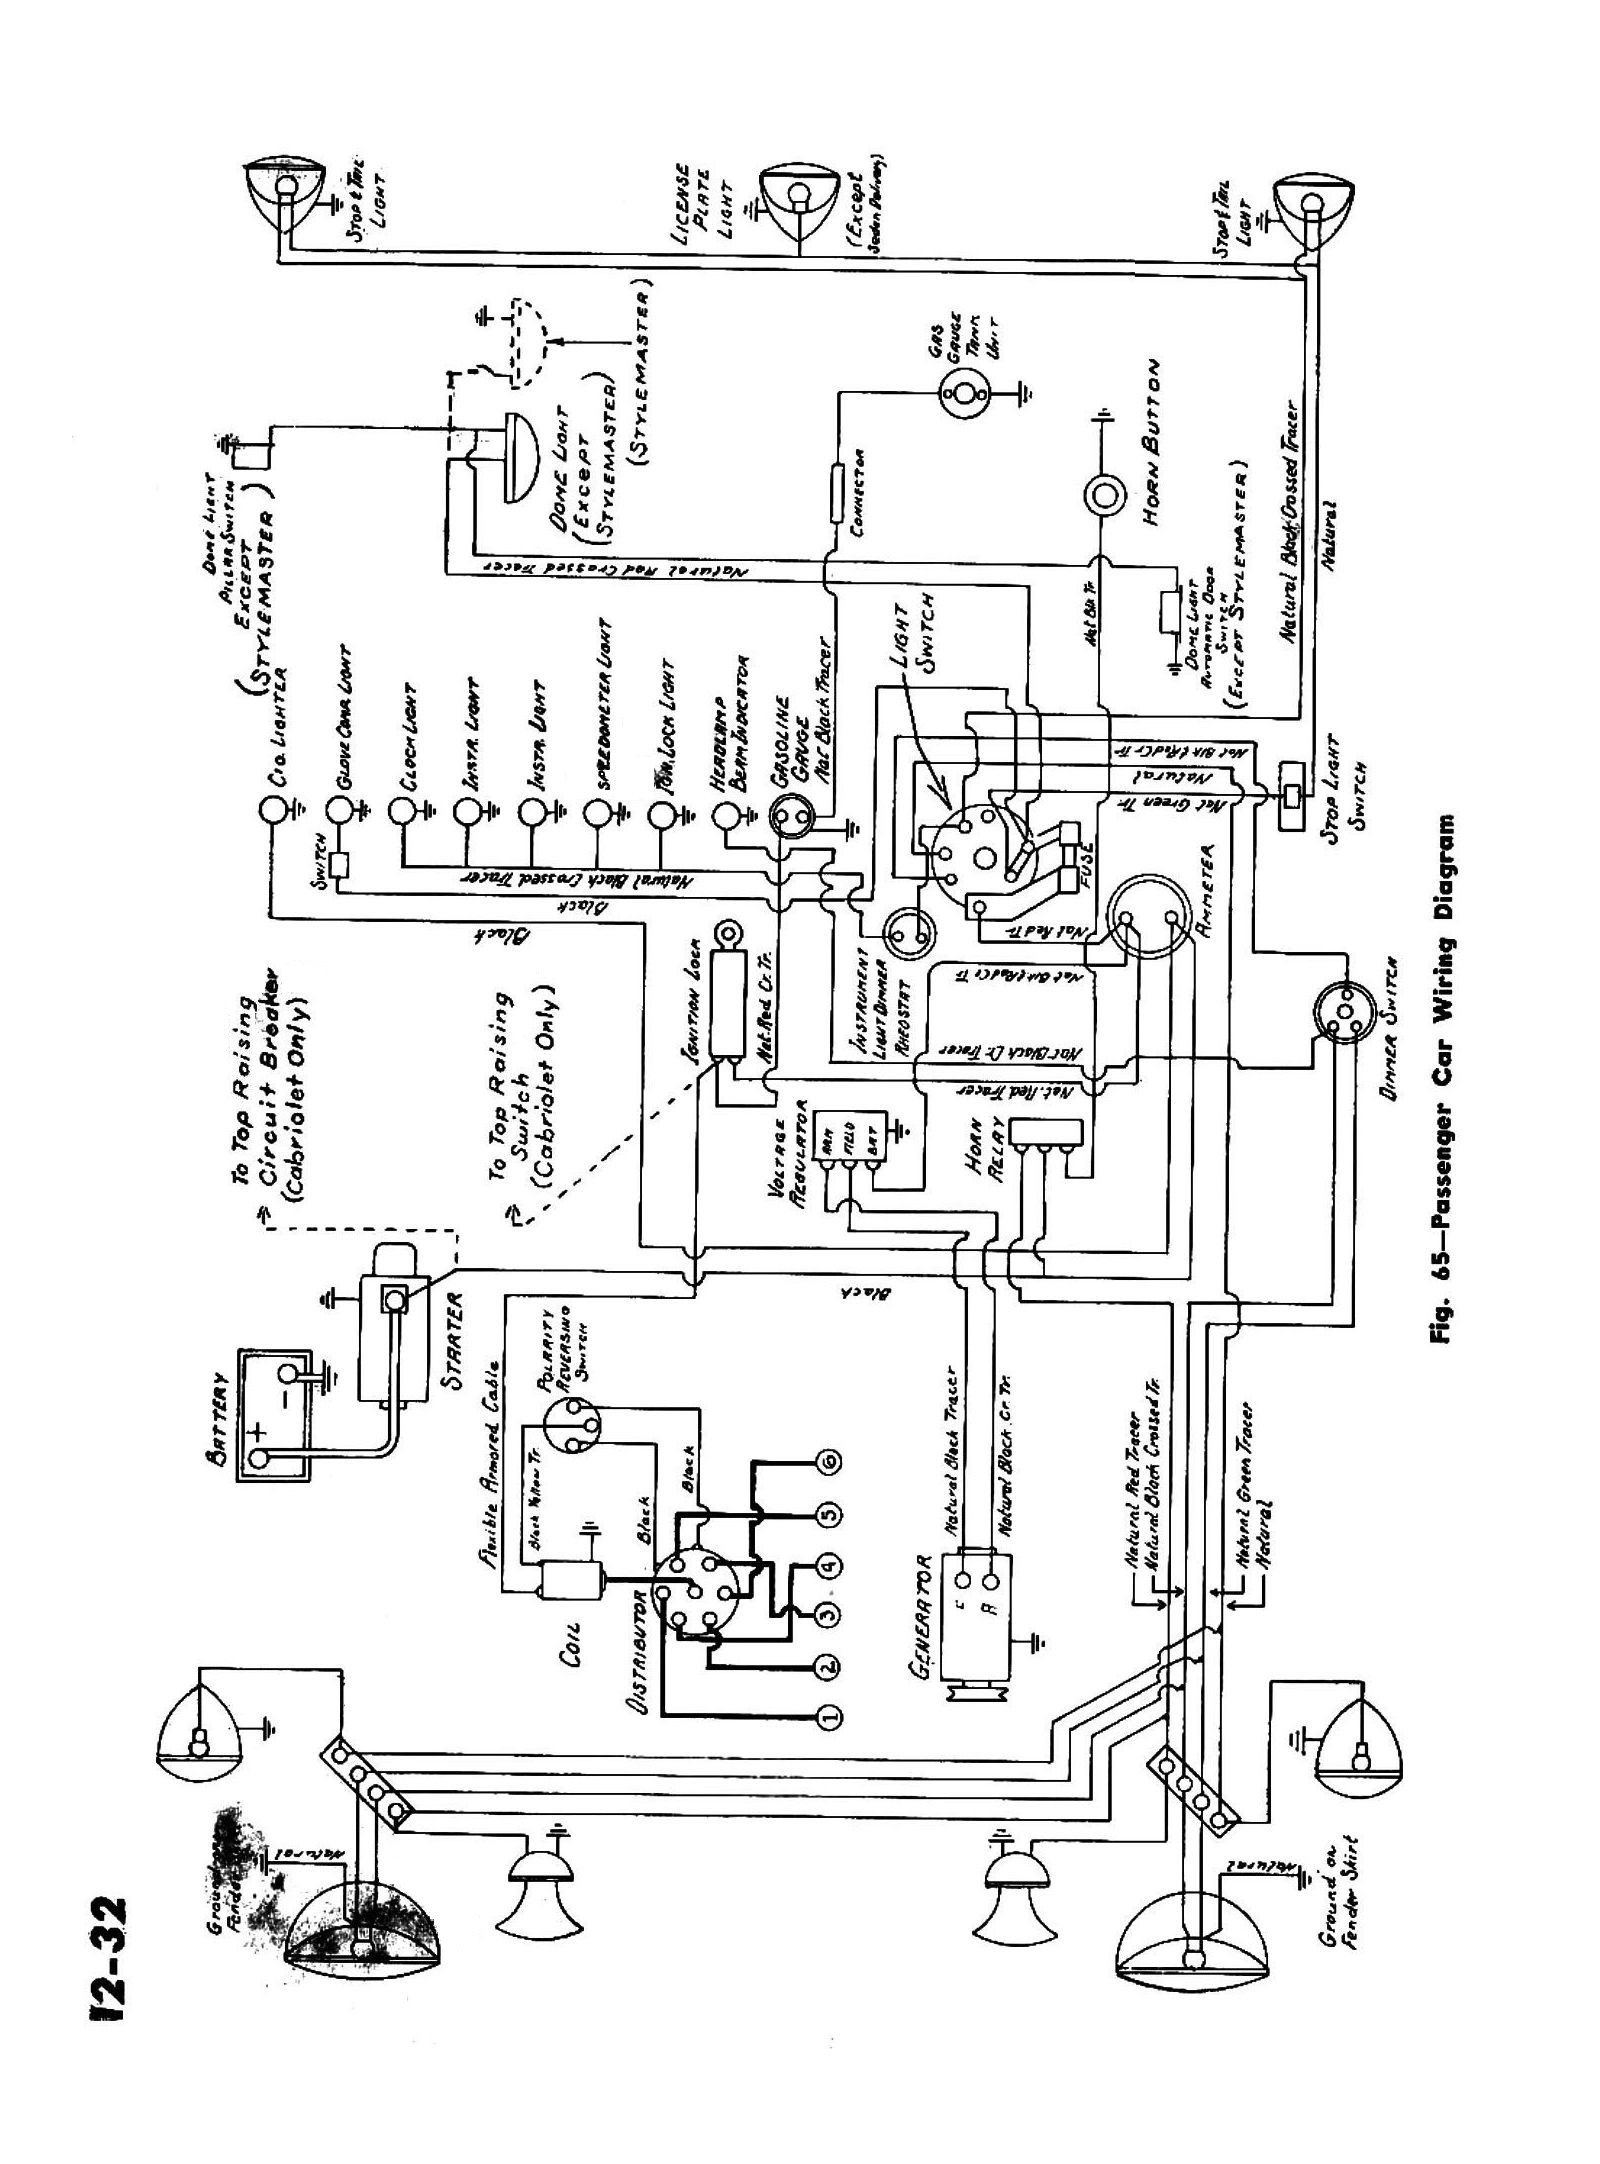 45car chevy wiring diagrams 1956 Bel Air Wiring Diagram at bayanpartner.co